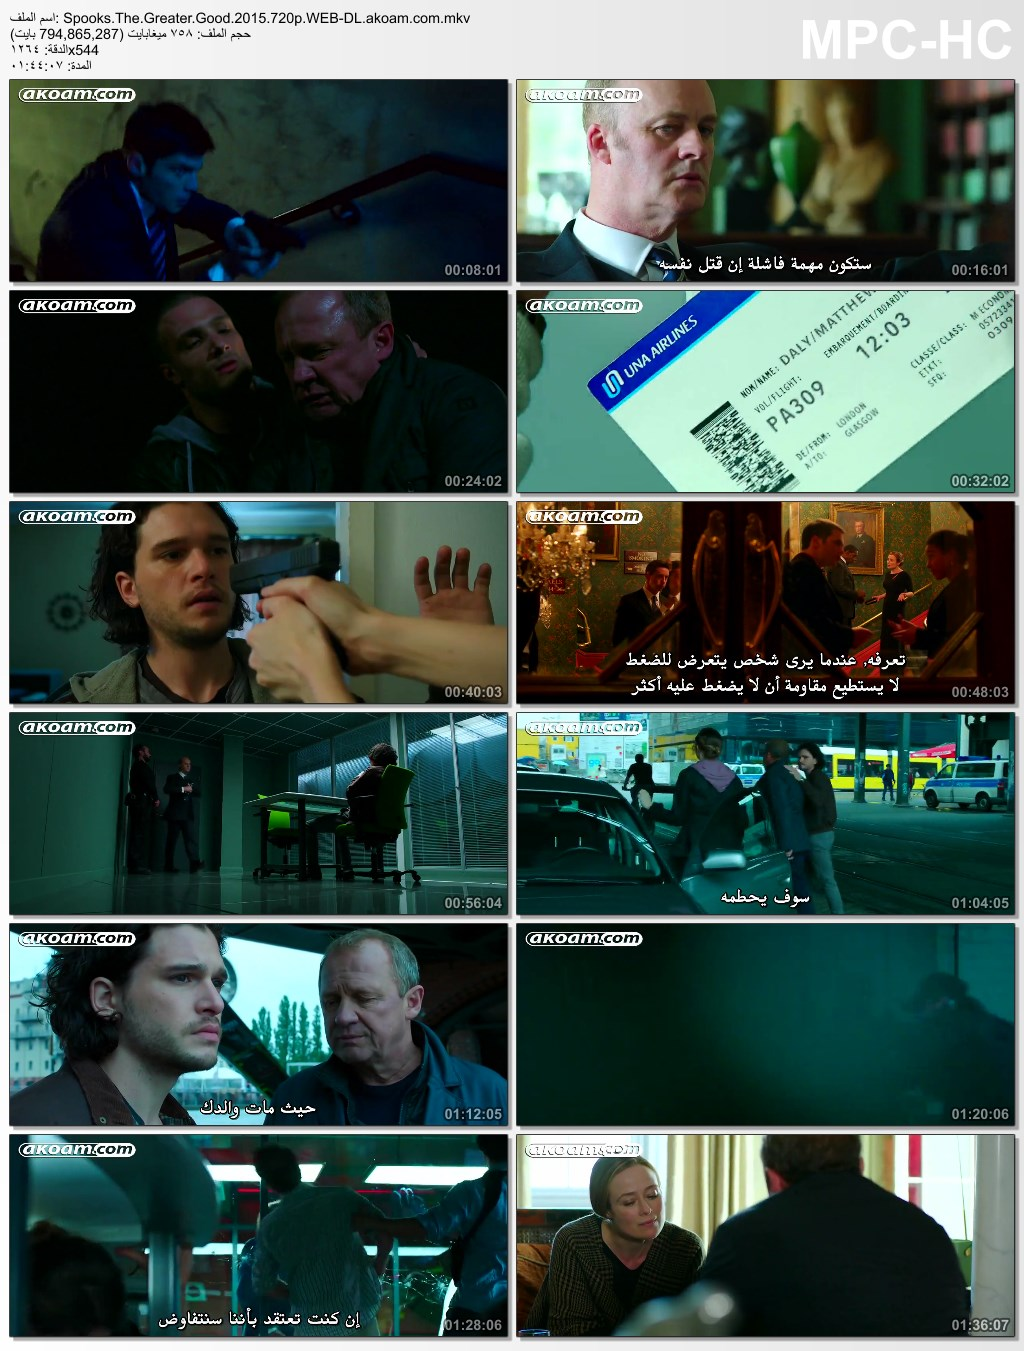 Spooks: The Greater Good 2015,Spooks: The Greater Good,الاكشن,الاثارة,الدراما